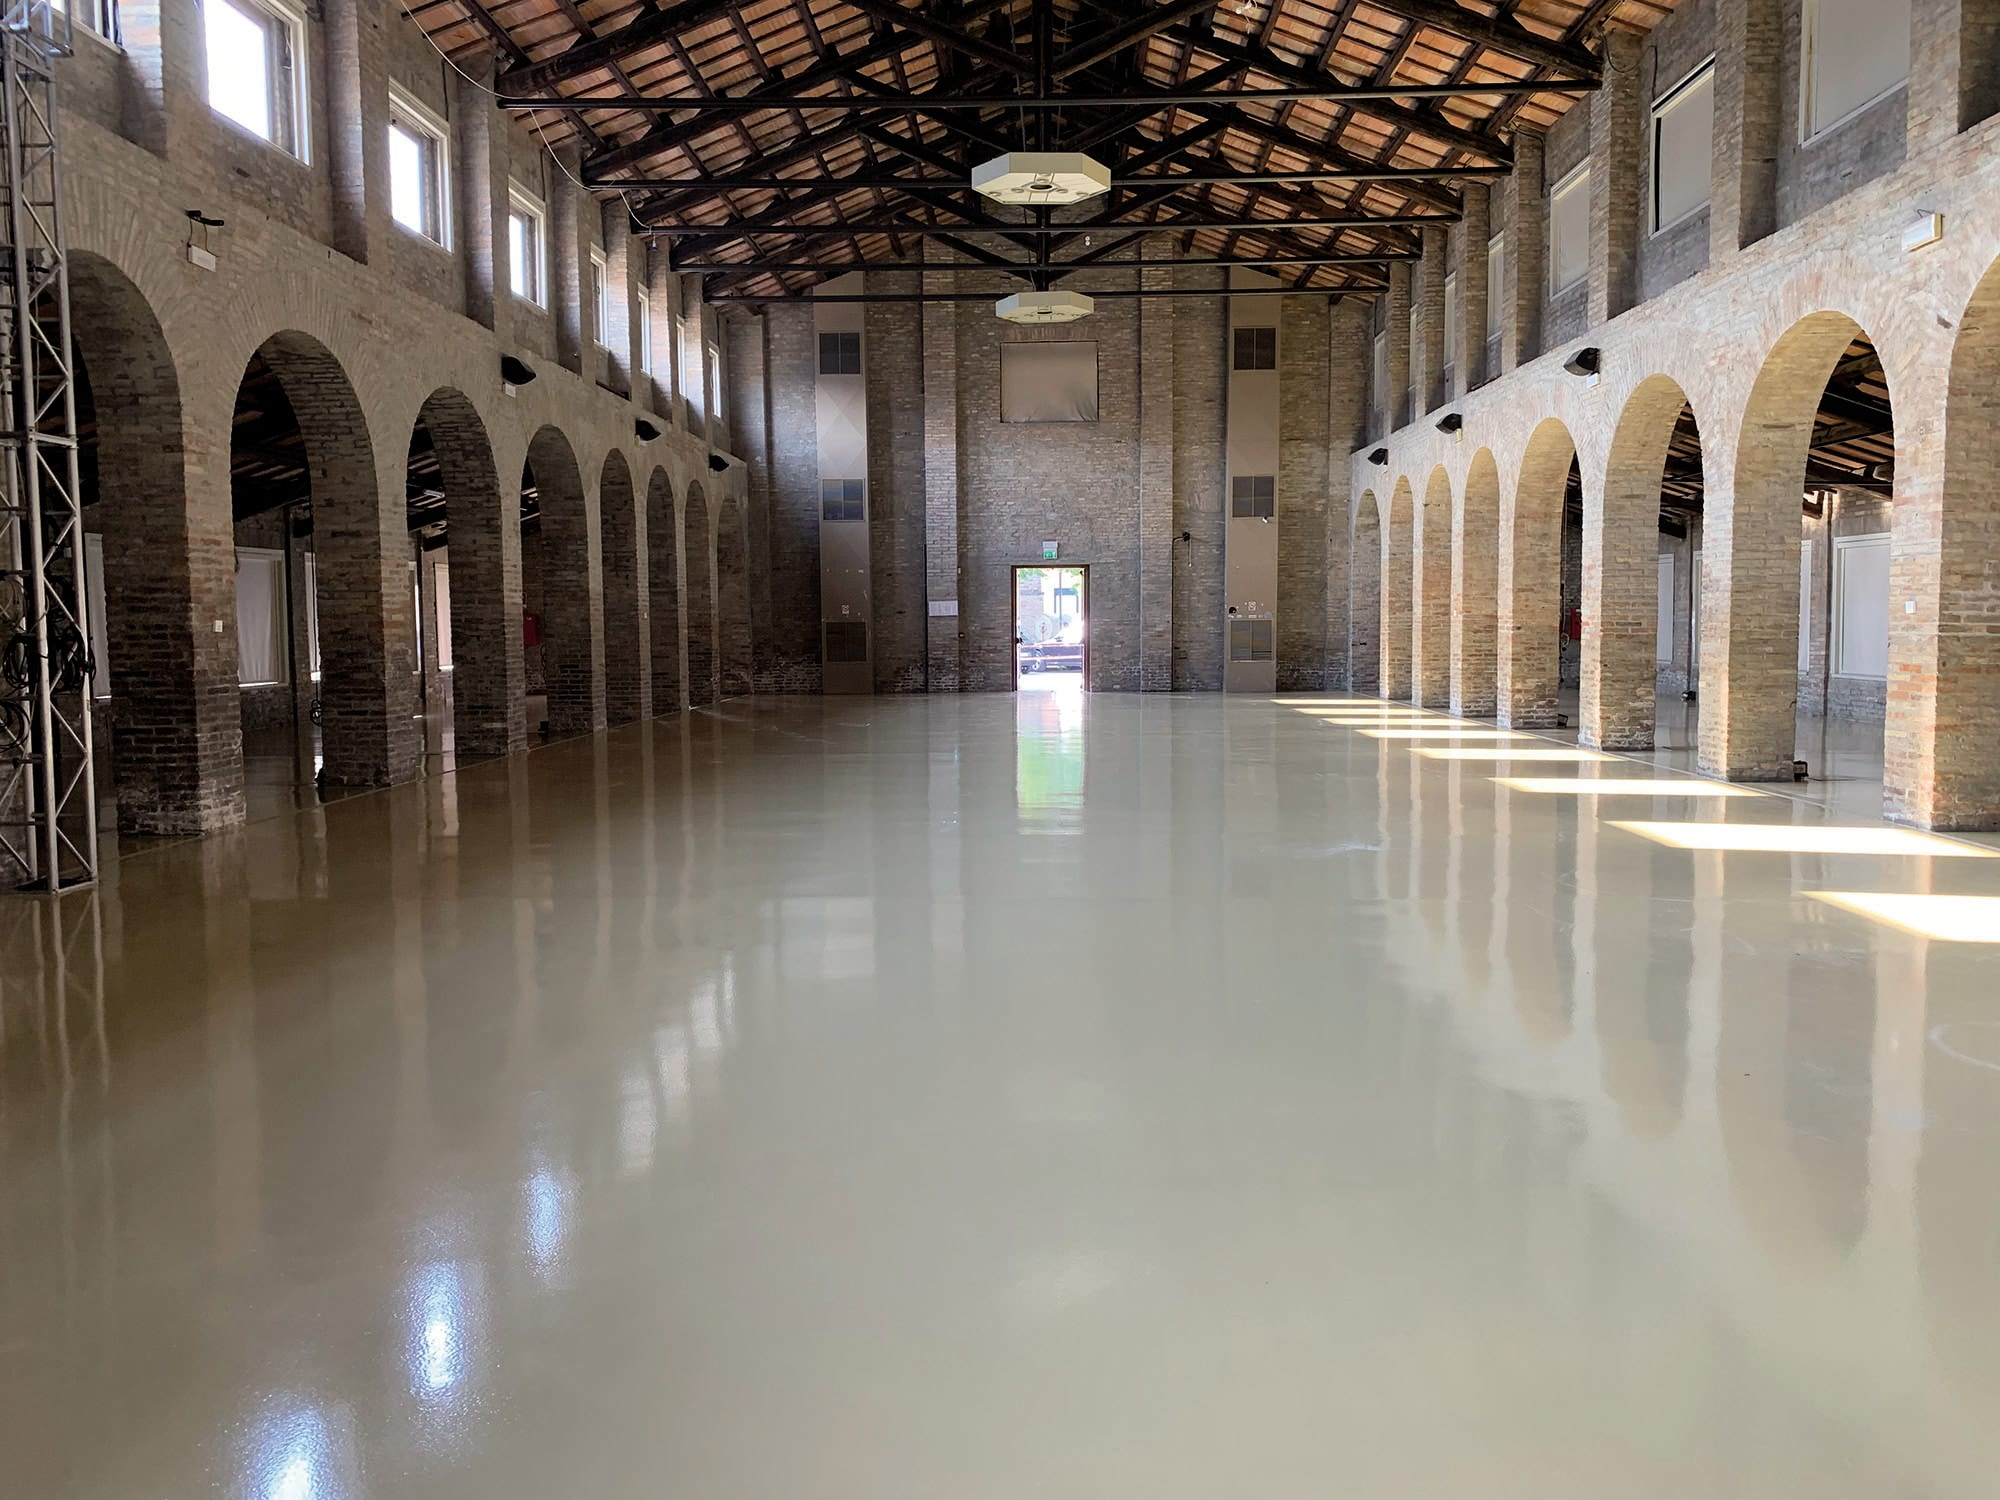 Almagià is a cultural hub located in the warehouse of a former sulphur refinery _Mapefloor System 33_finito